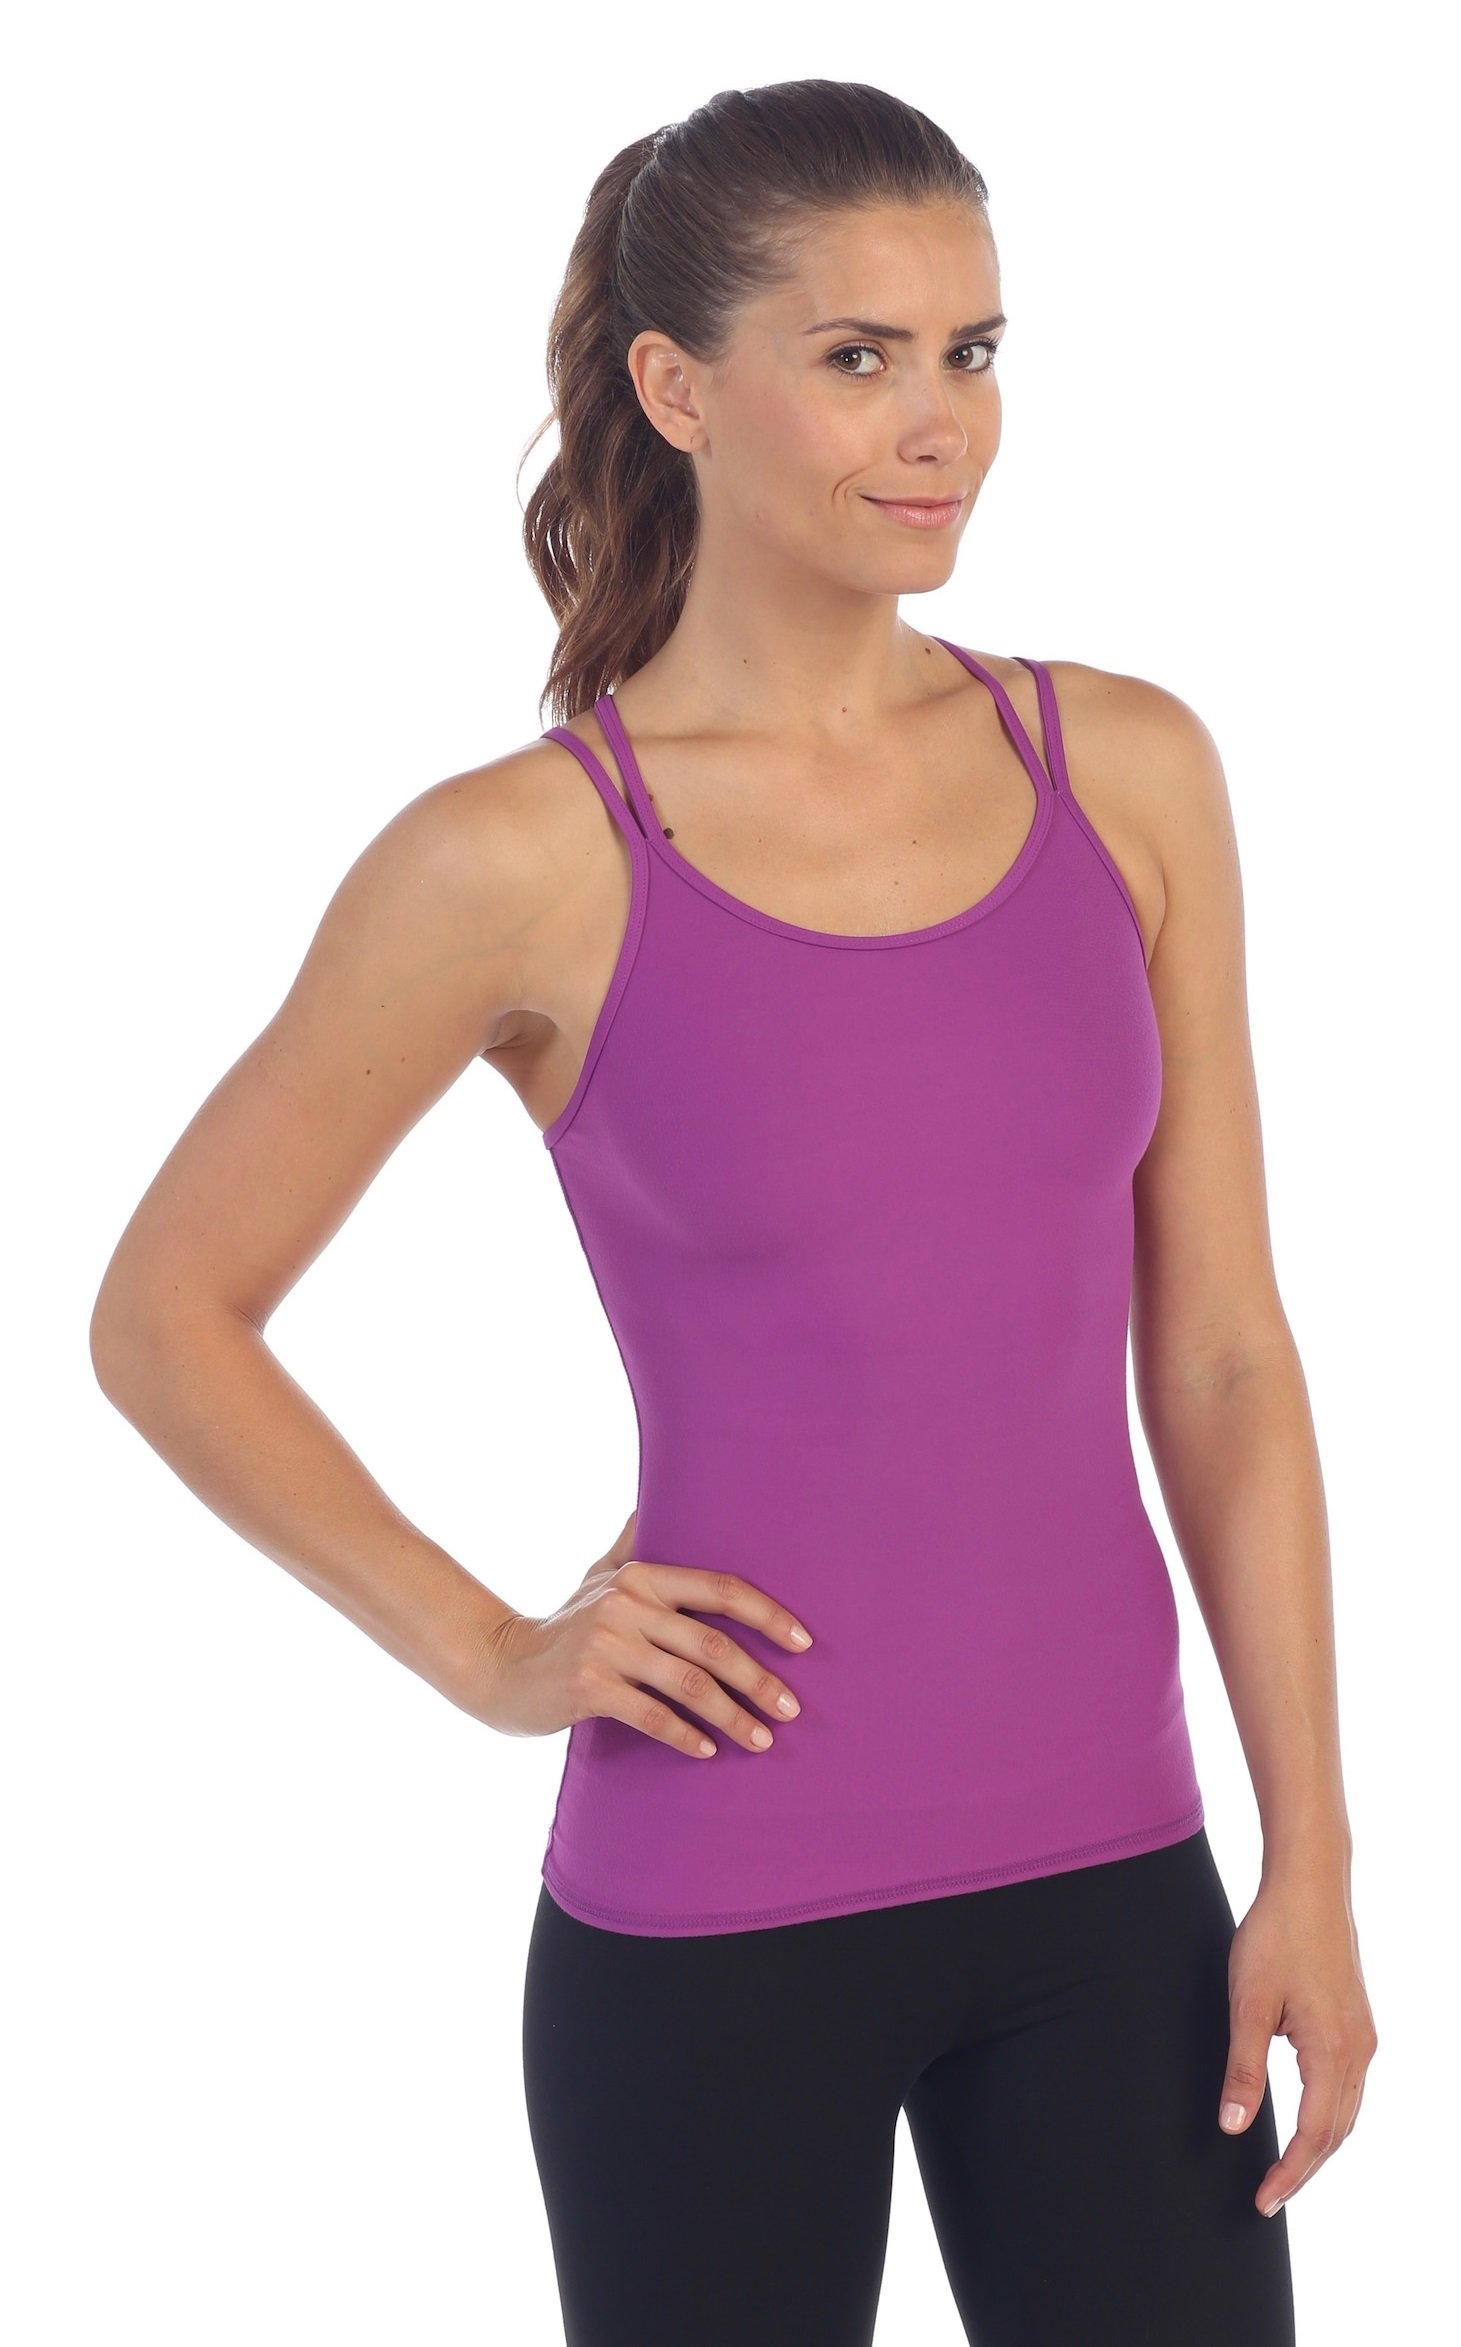 American Fitness Couture Summer Sale Womens Strappy Back Workout Tank Top, Orchid L by American Fitness Couture (Image #3)